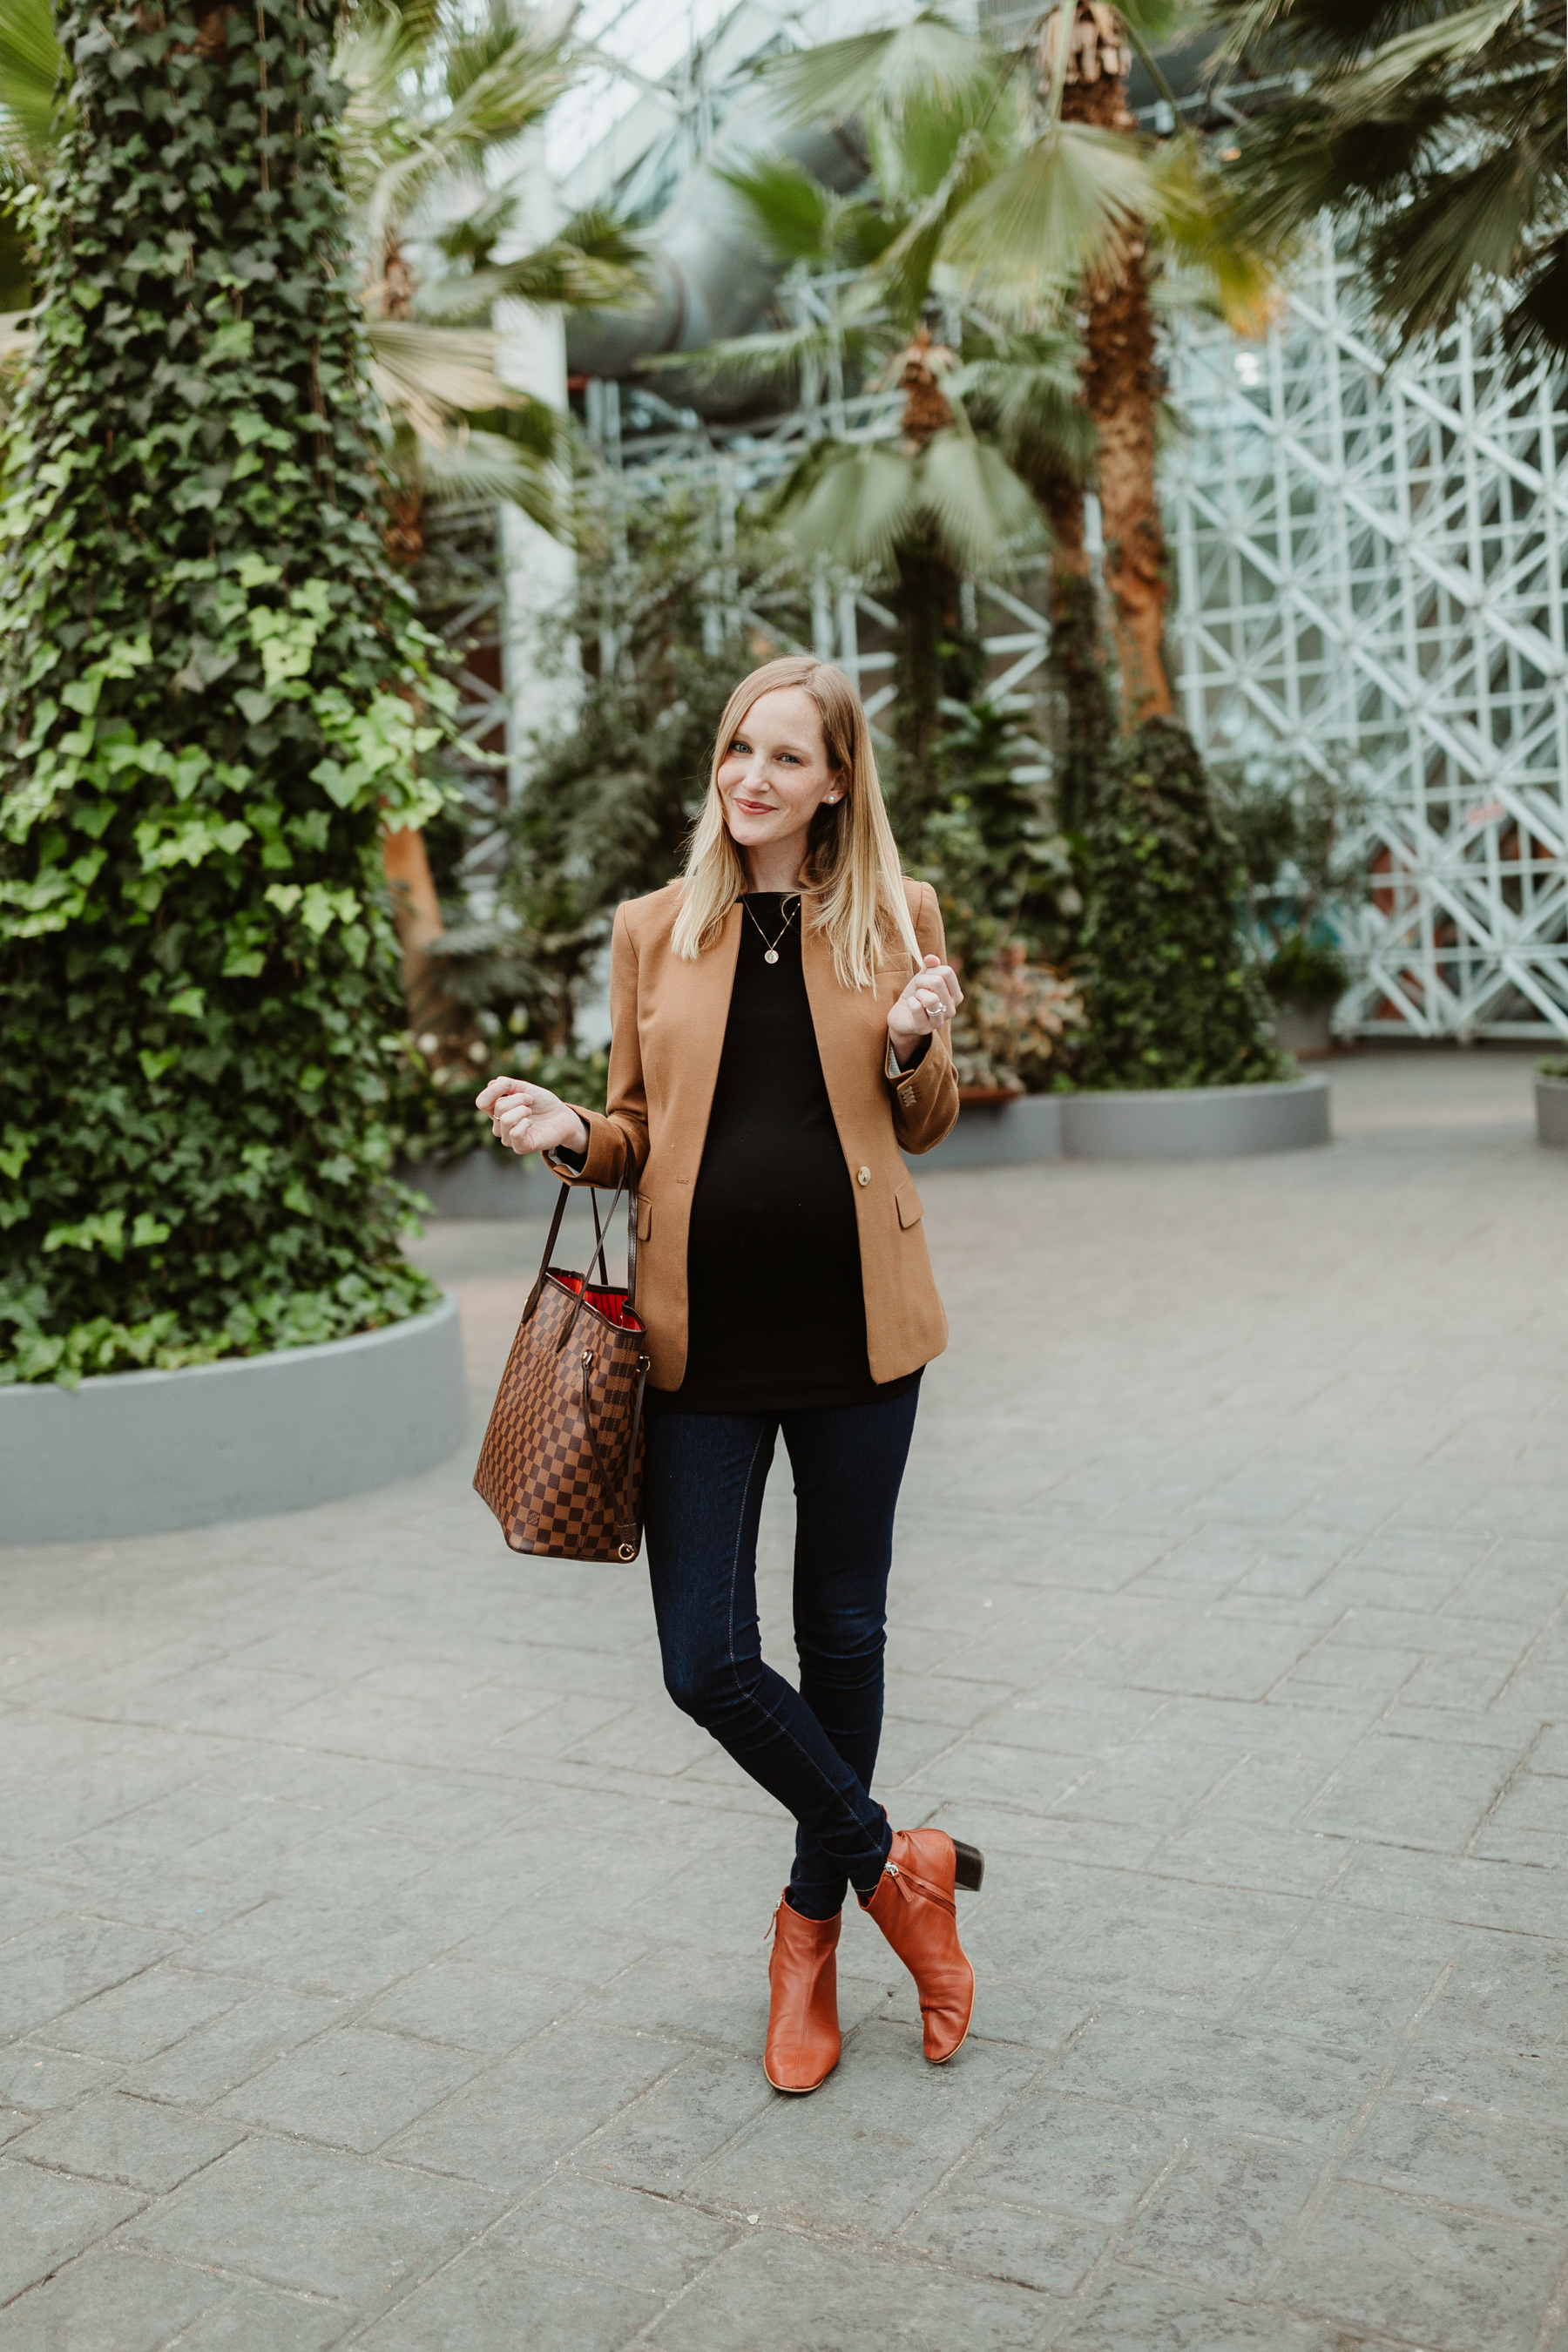 "Kelly's Outfit: Everlane Day Boot c/o / Gold Initial Necklace / J.Crew Regent Blazer / Softest ""Modern Boatneck"" Tee by Gap / Louis Vuitton MM Neverfull Tote / Old Navy Rockstar Jeans"